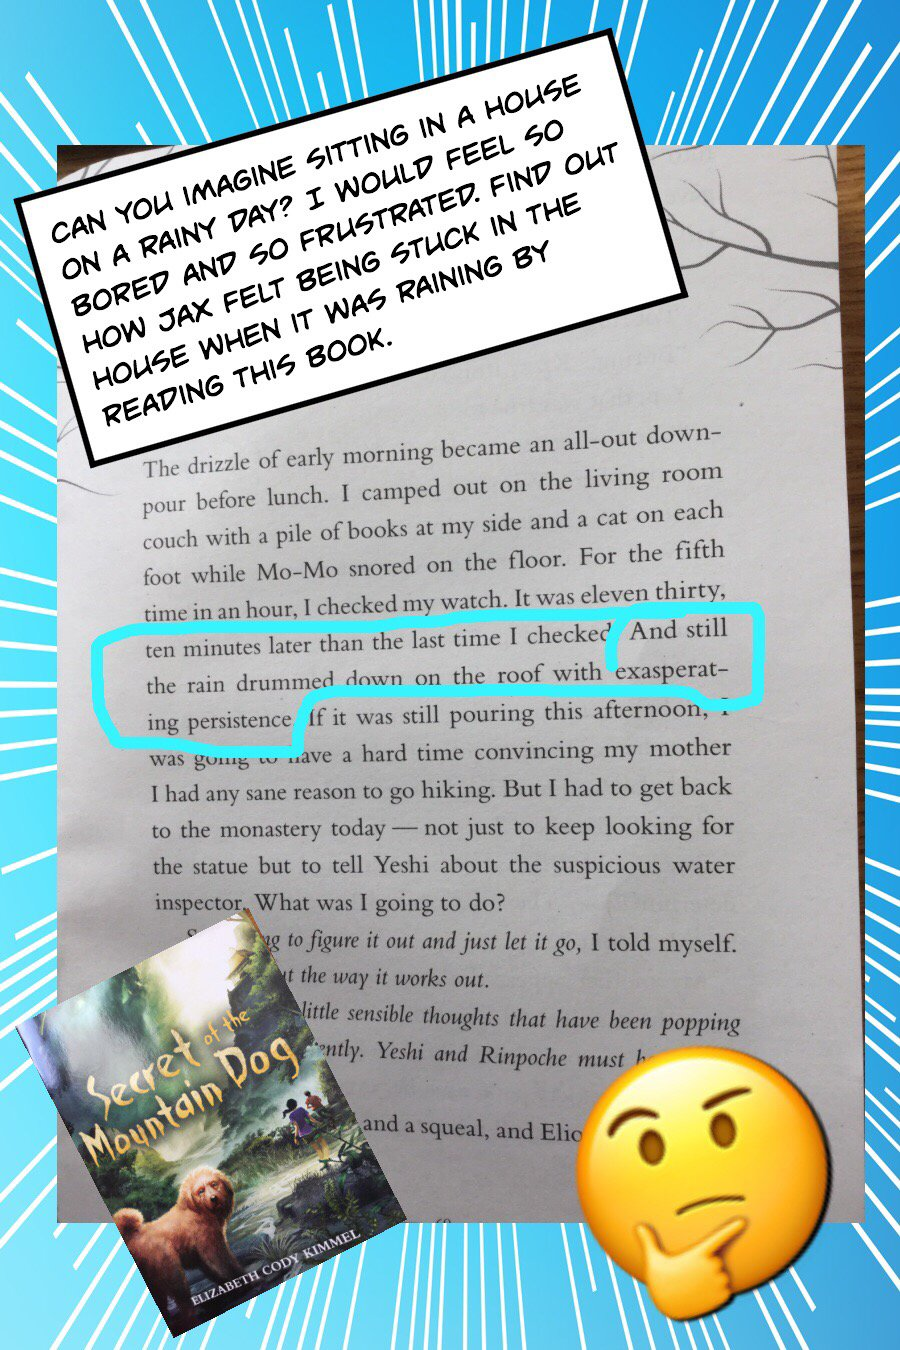 #booksnapswk2 #booksnaps NH_4VDH sharing about Secret of the Mountain Dog @kerrvand #betl https://t.co/ajwYyu1w2Q